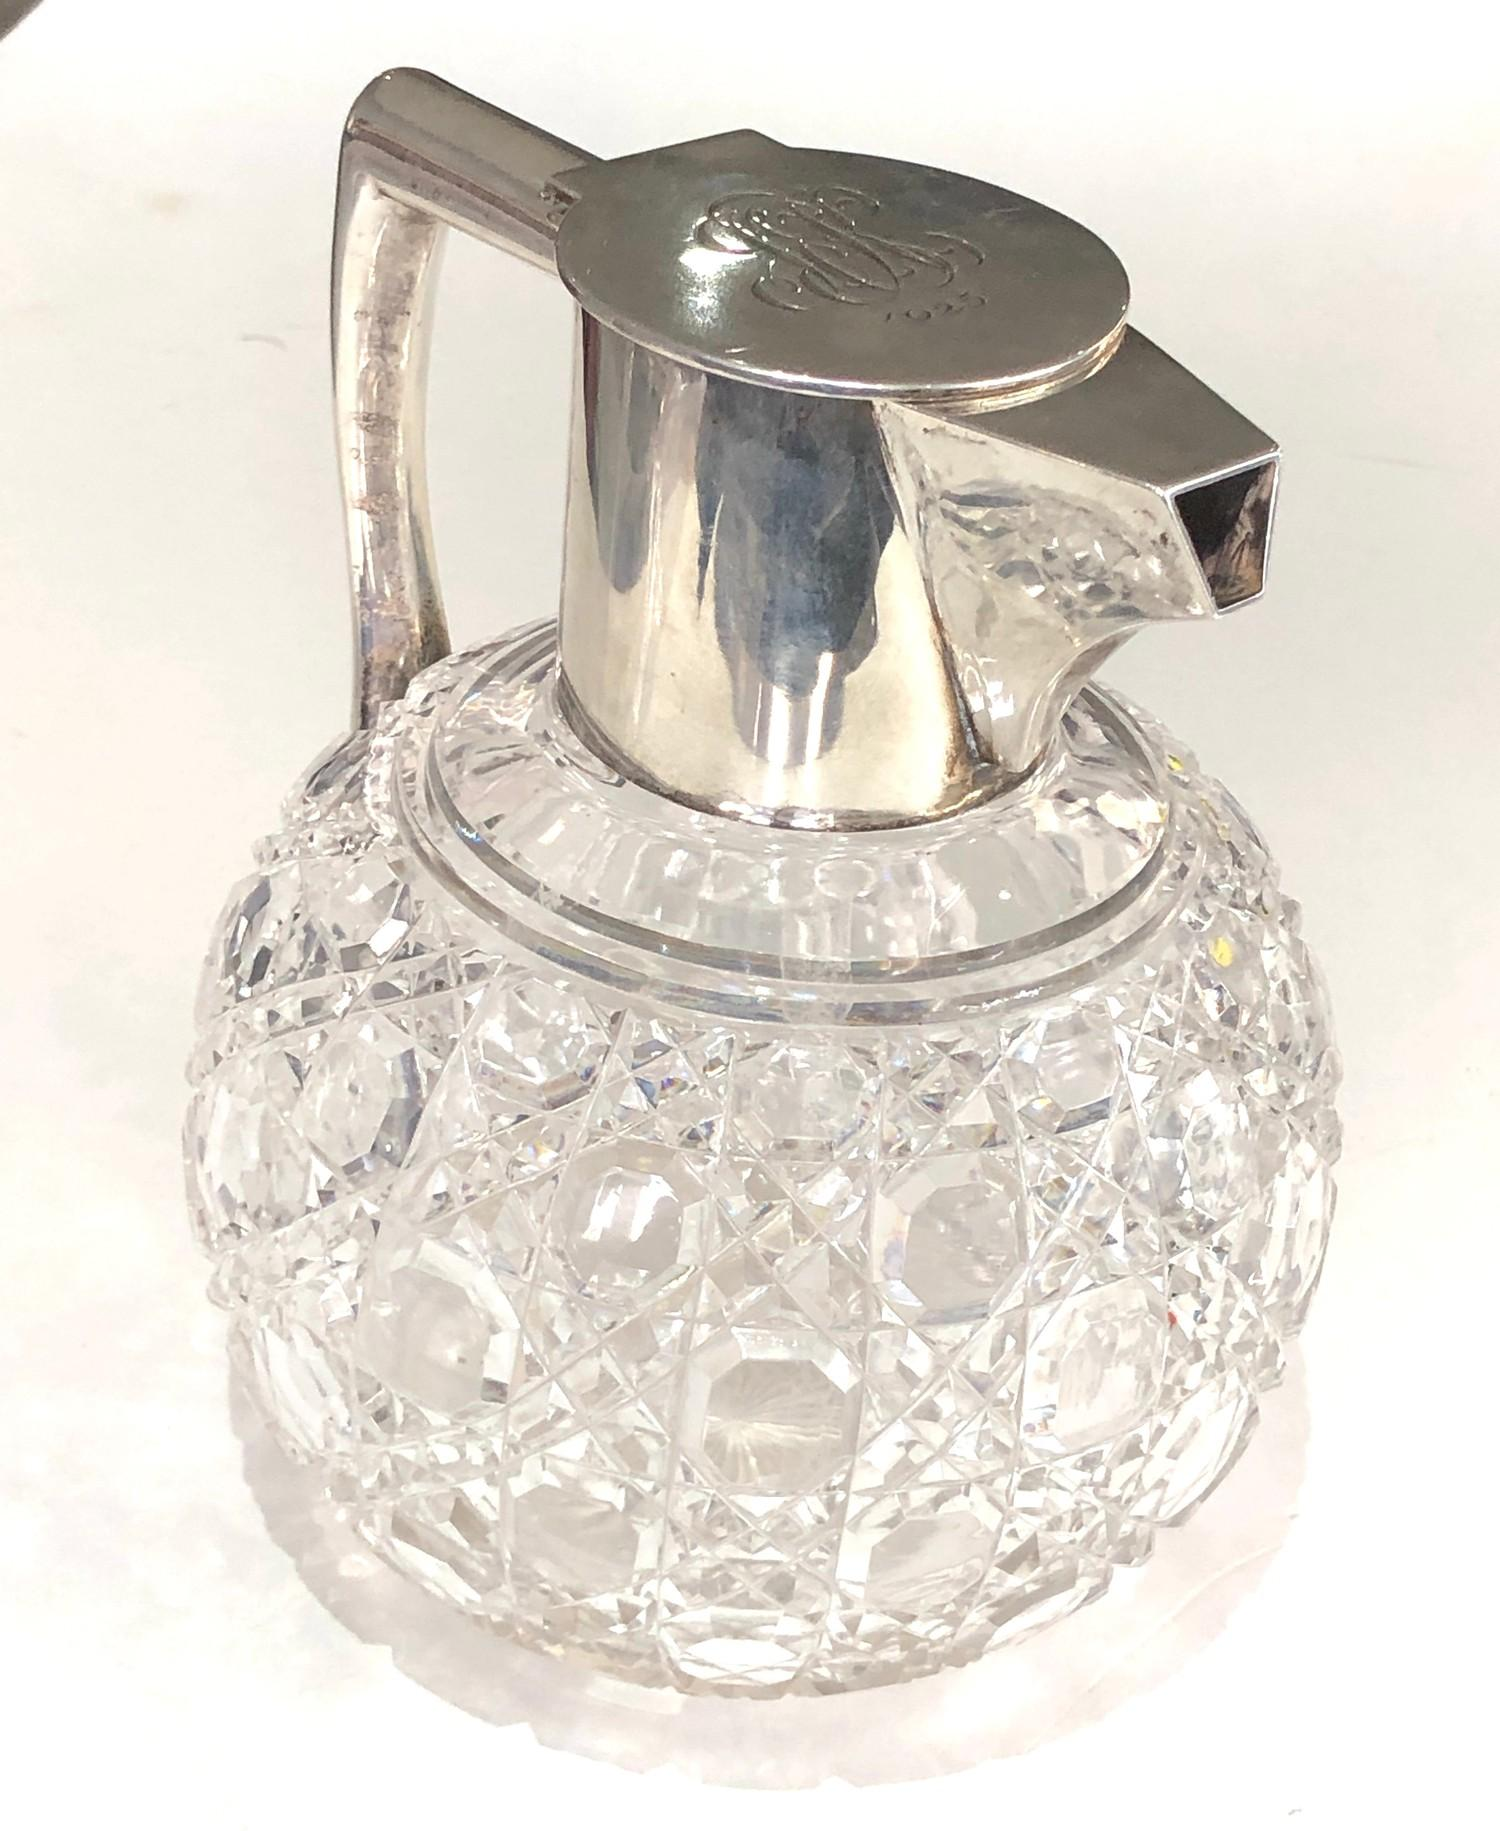 Antique silver and cut glass claret jug London silver hallmarks engraved initials to lid measures - Image 2 of 7